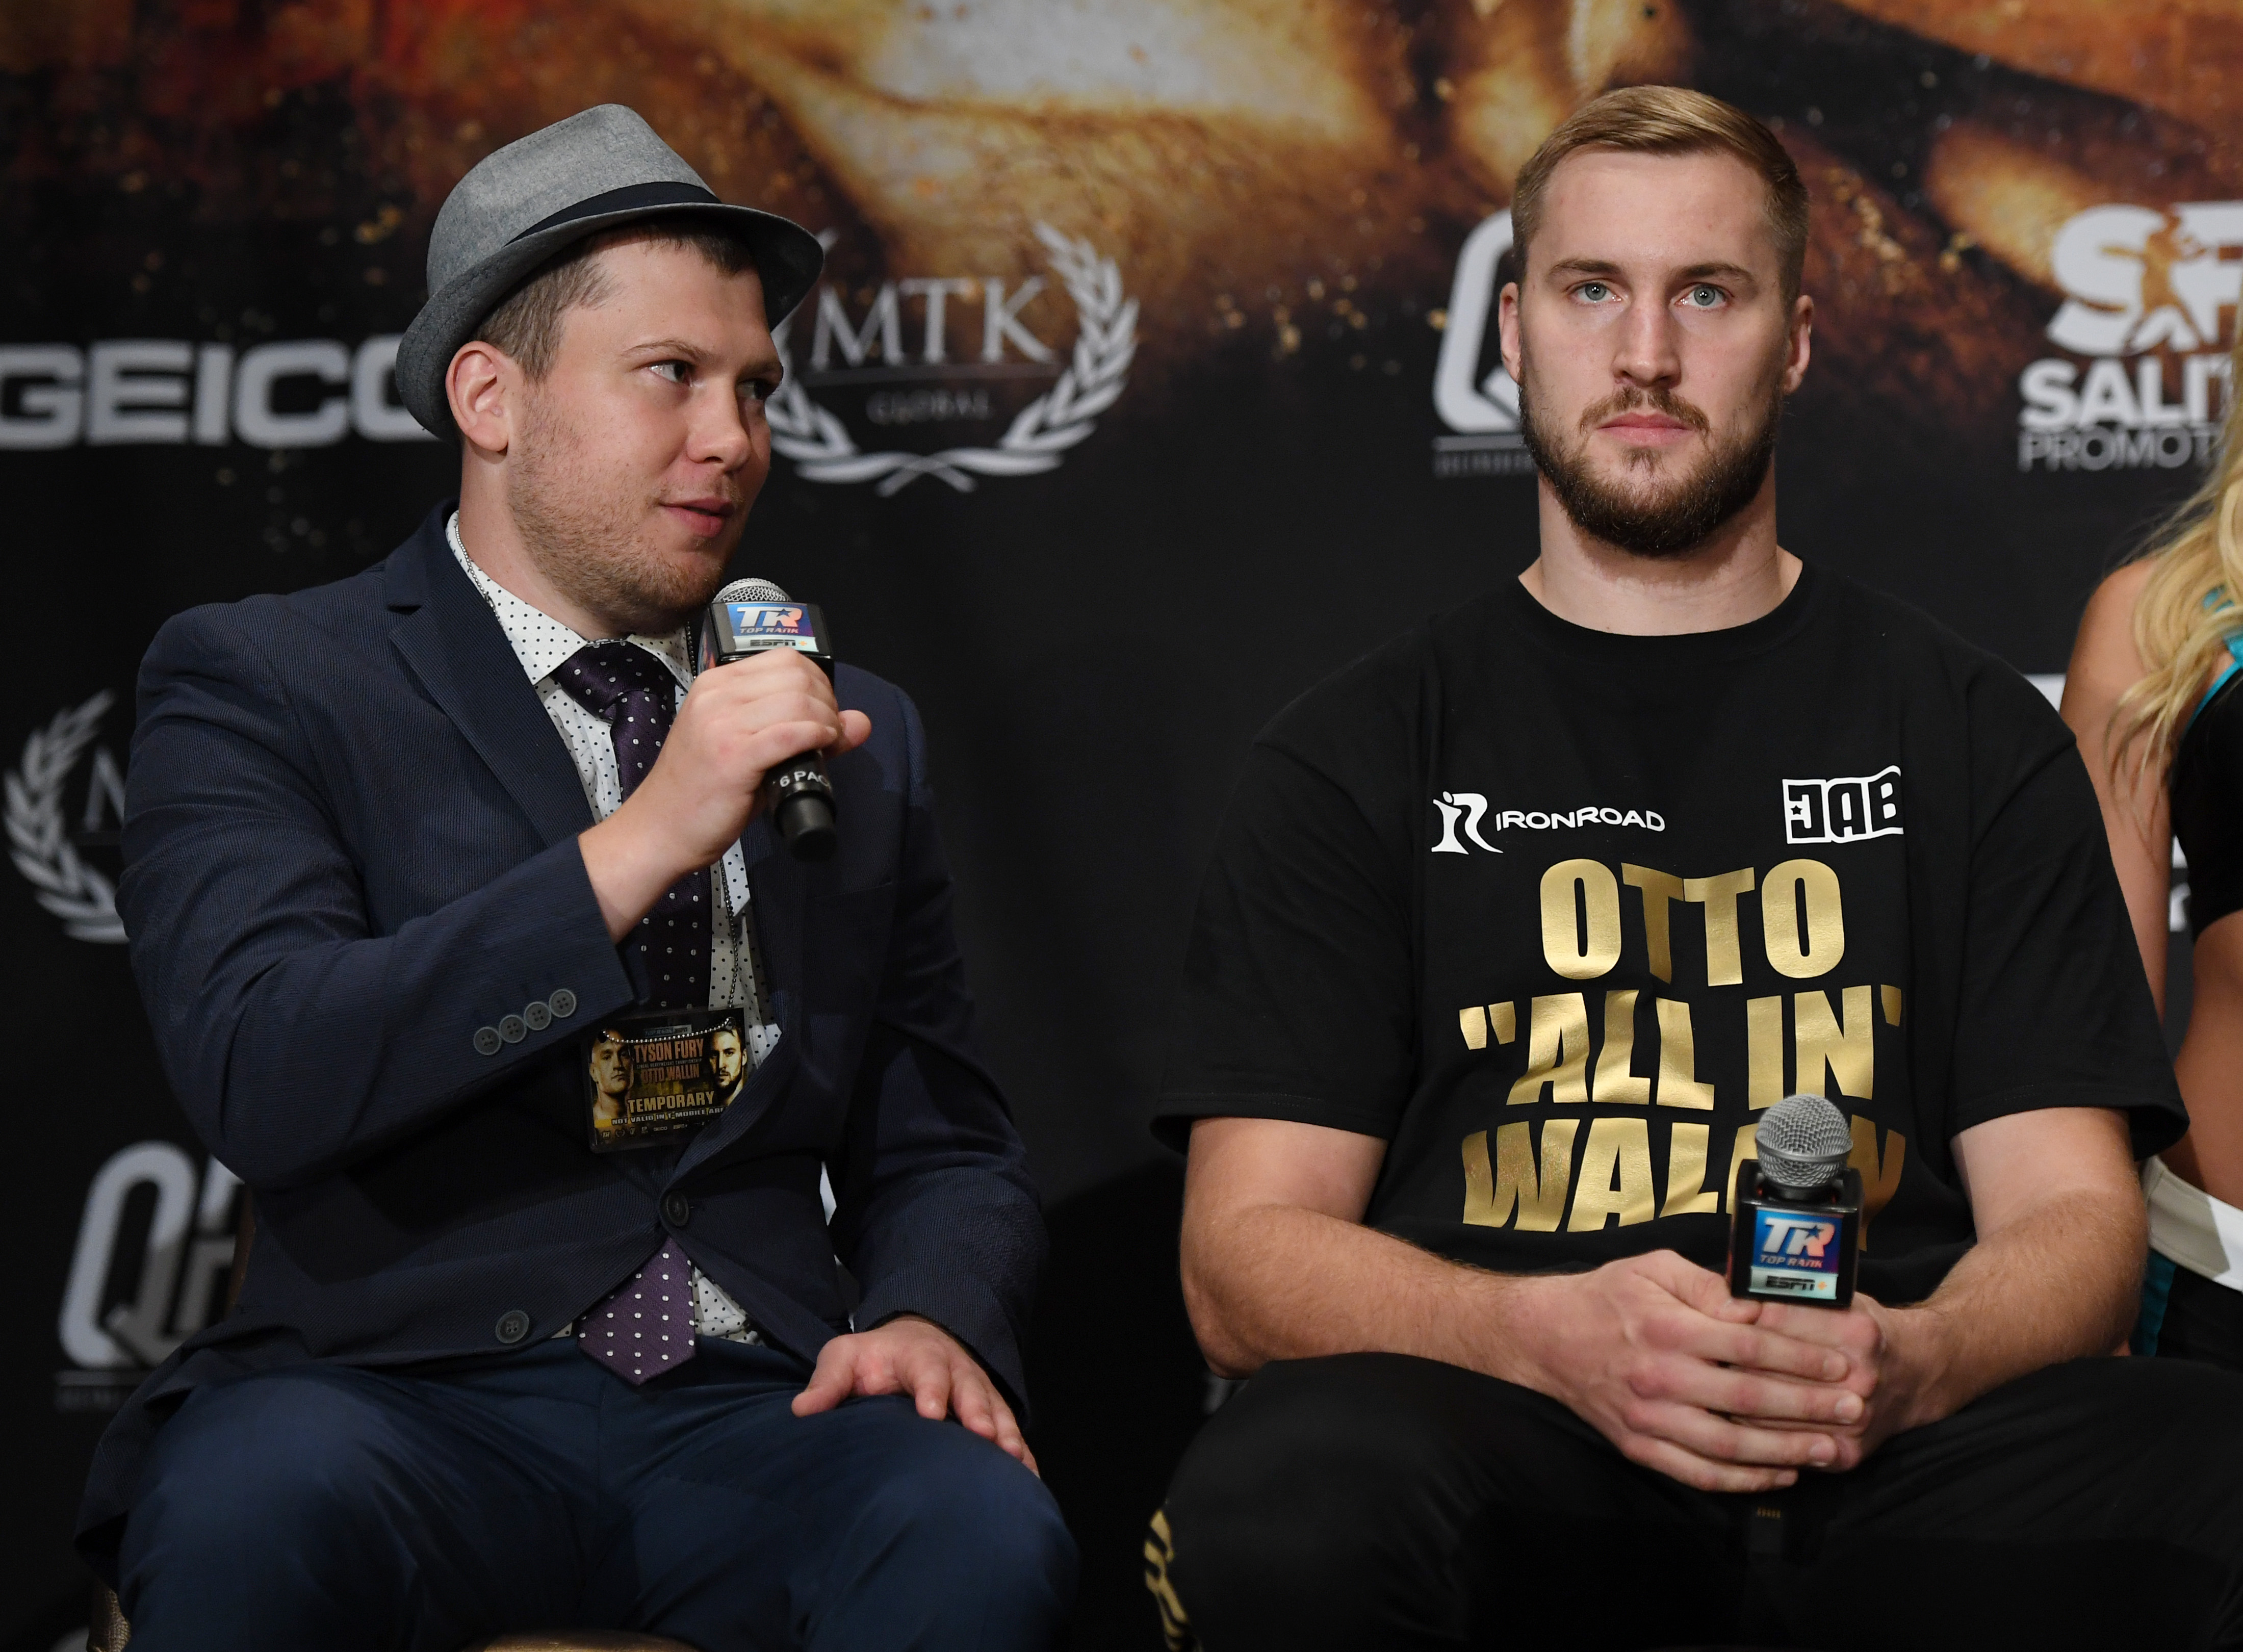 Promoter Dmitry Salita is skeptical about Dillian Whyte's reported injury